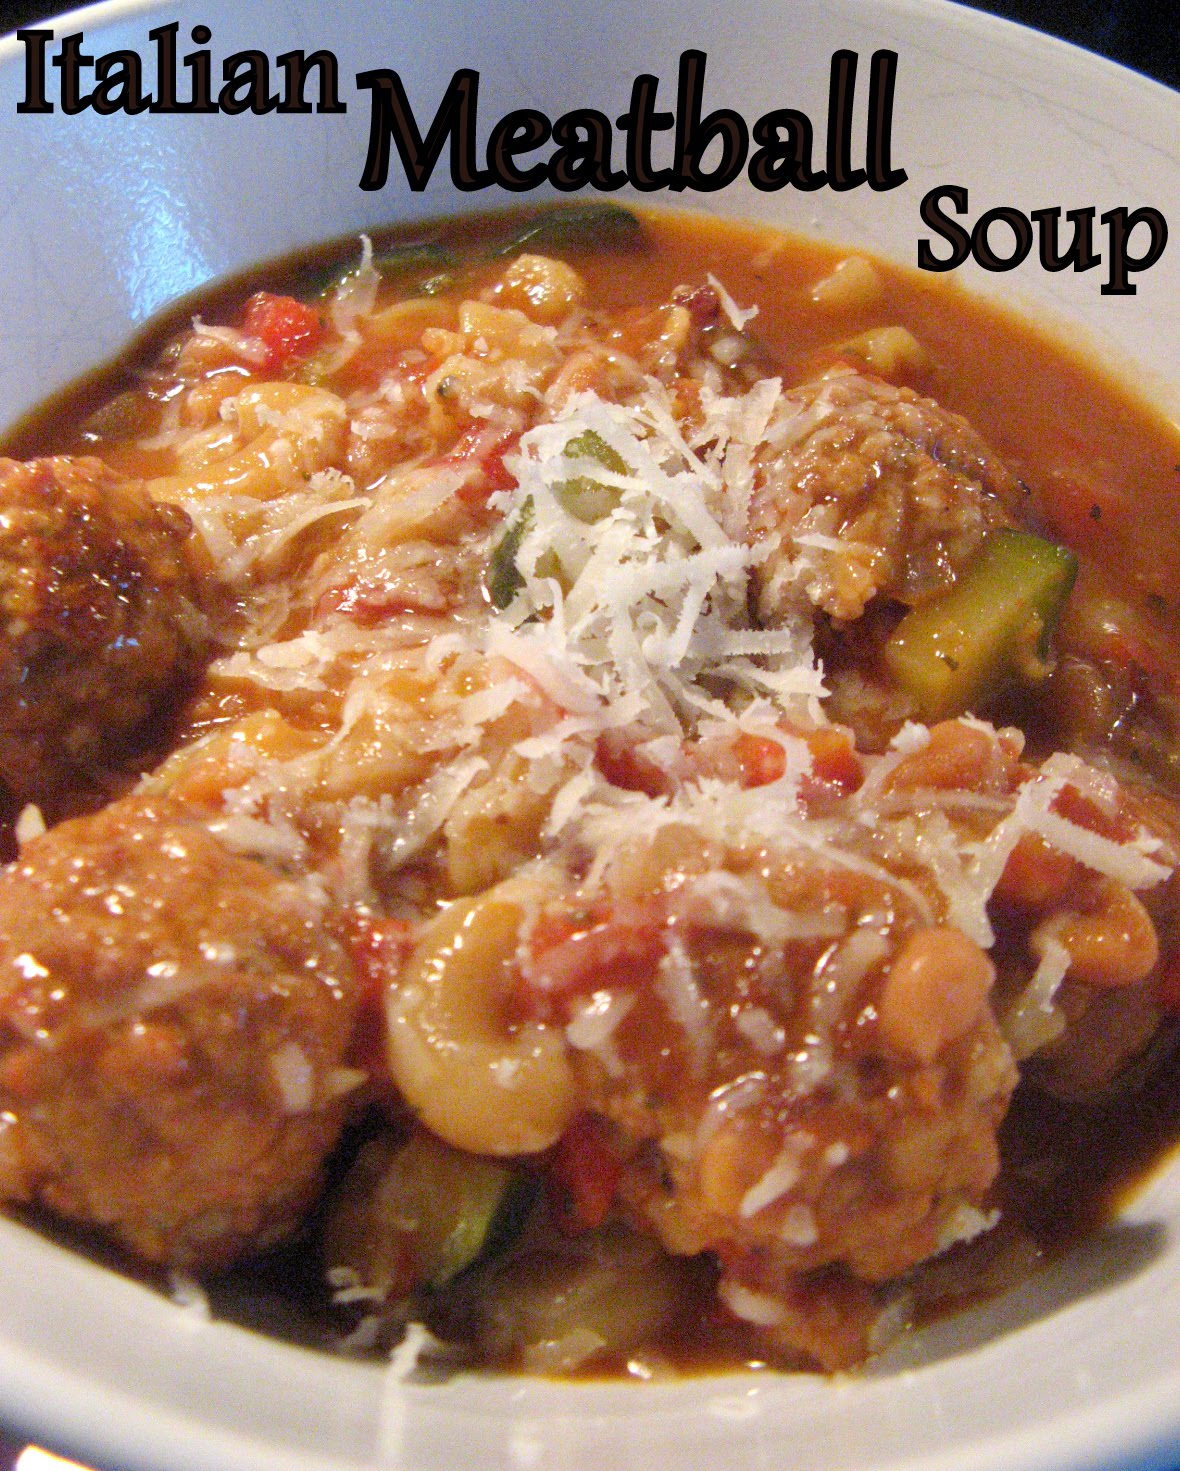 The Baking Bookworm: Italian Meatball Soup